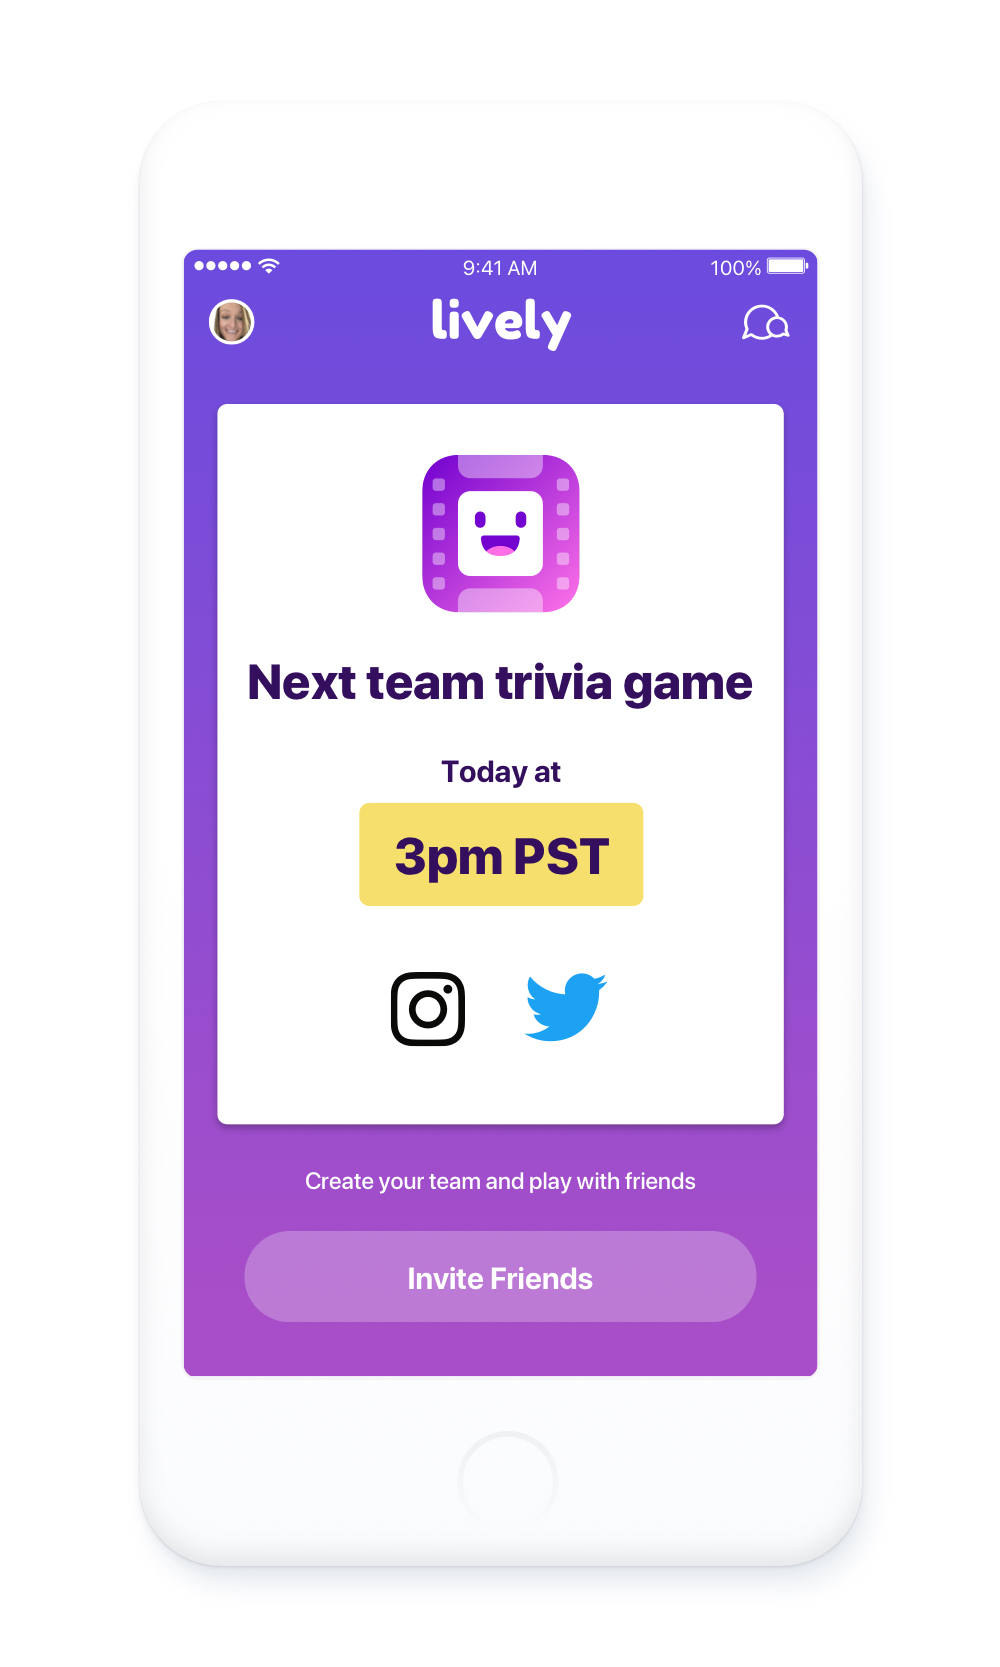 Less time constraints. - Games begin daily and 3PM and 7PM PT. Each session lasts 30 minutes. Join in at anytime during that 30 minute period to be placed on a team and play! Your team will compete against other teams playing during that same 30 minute period.